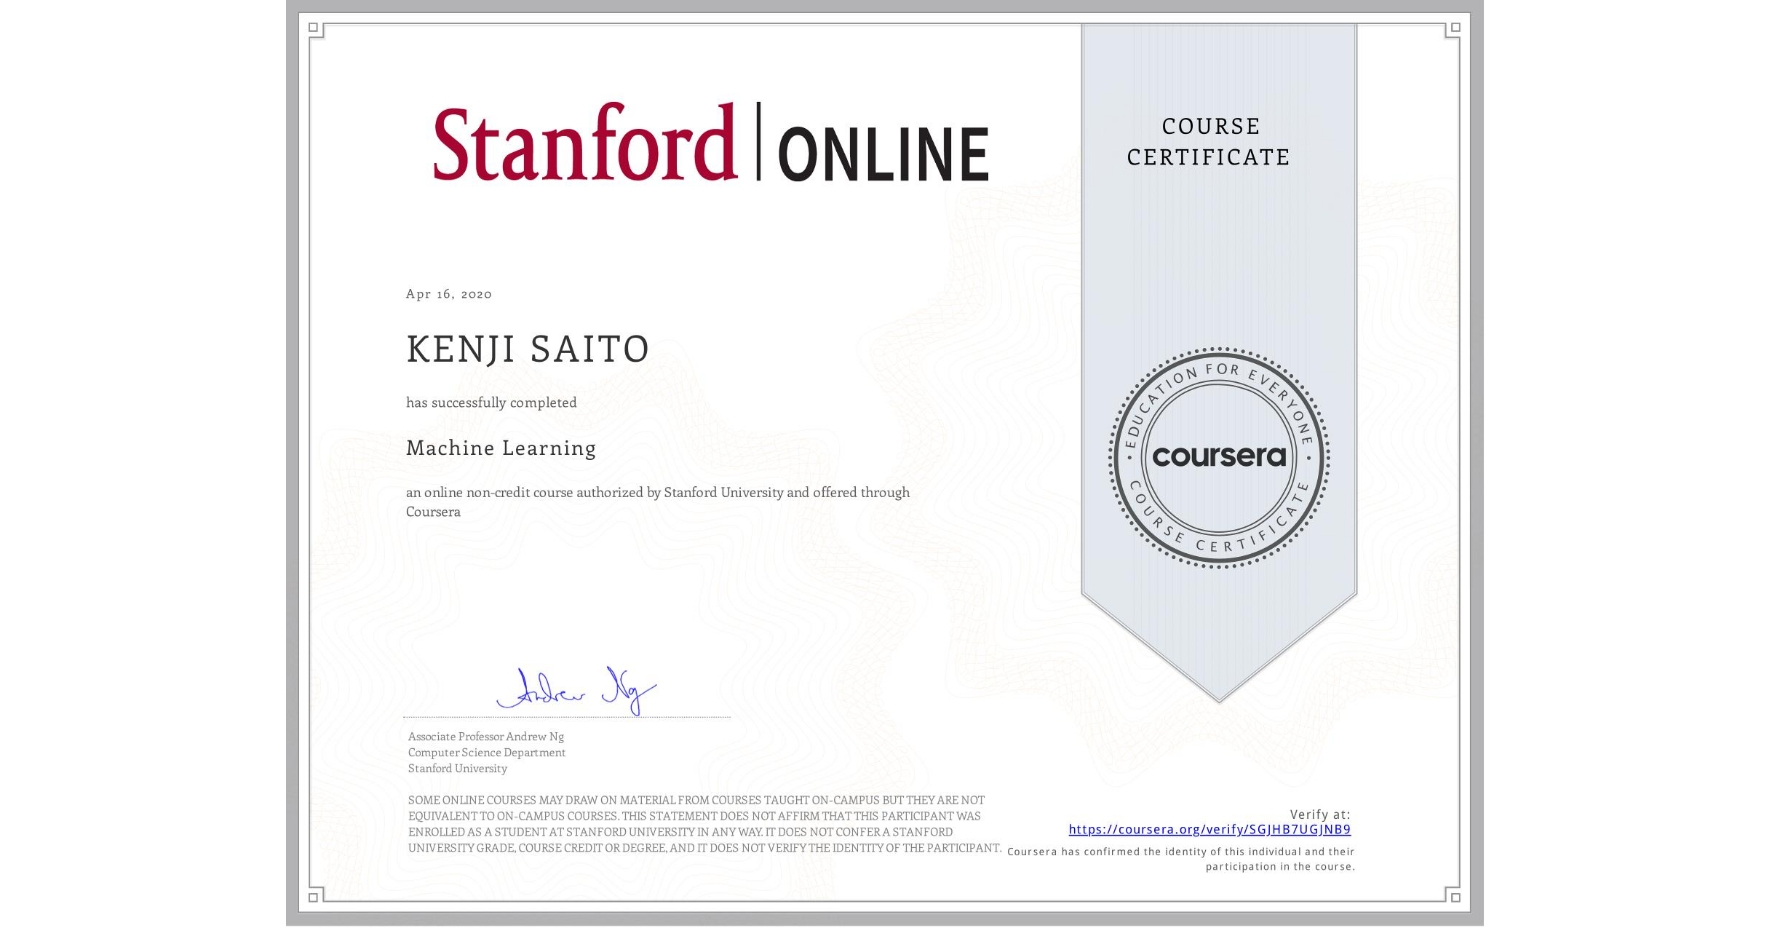 View certificate for KENJI SAITO, Machine Learning, an online non-credit course authorized by Stanford University and offered through Coursera